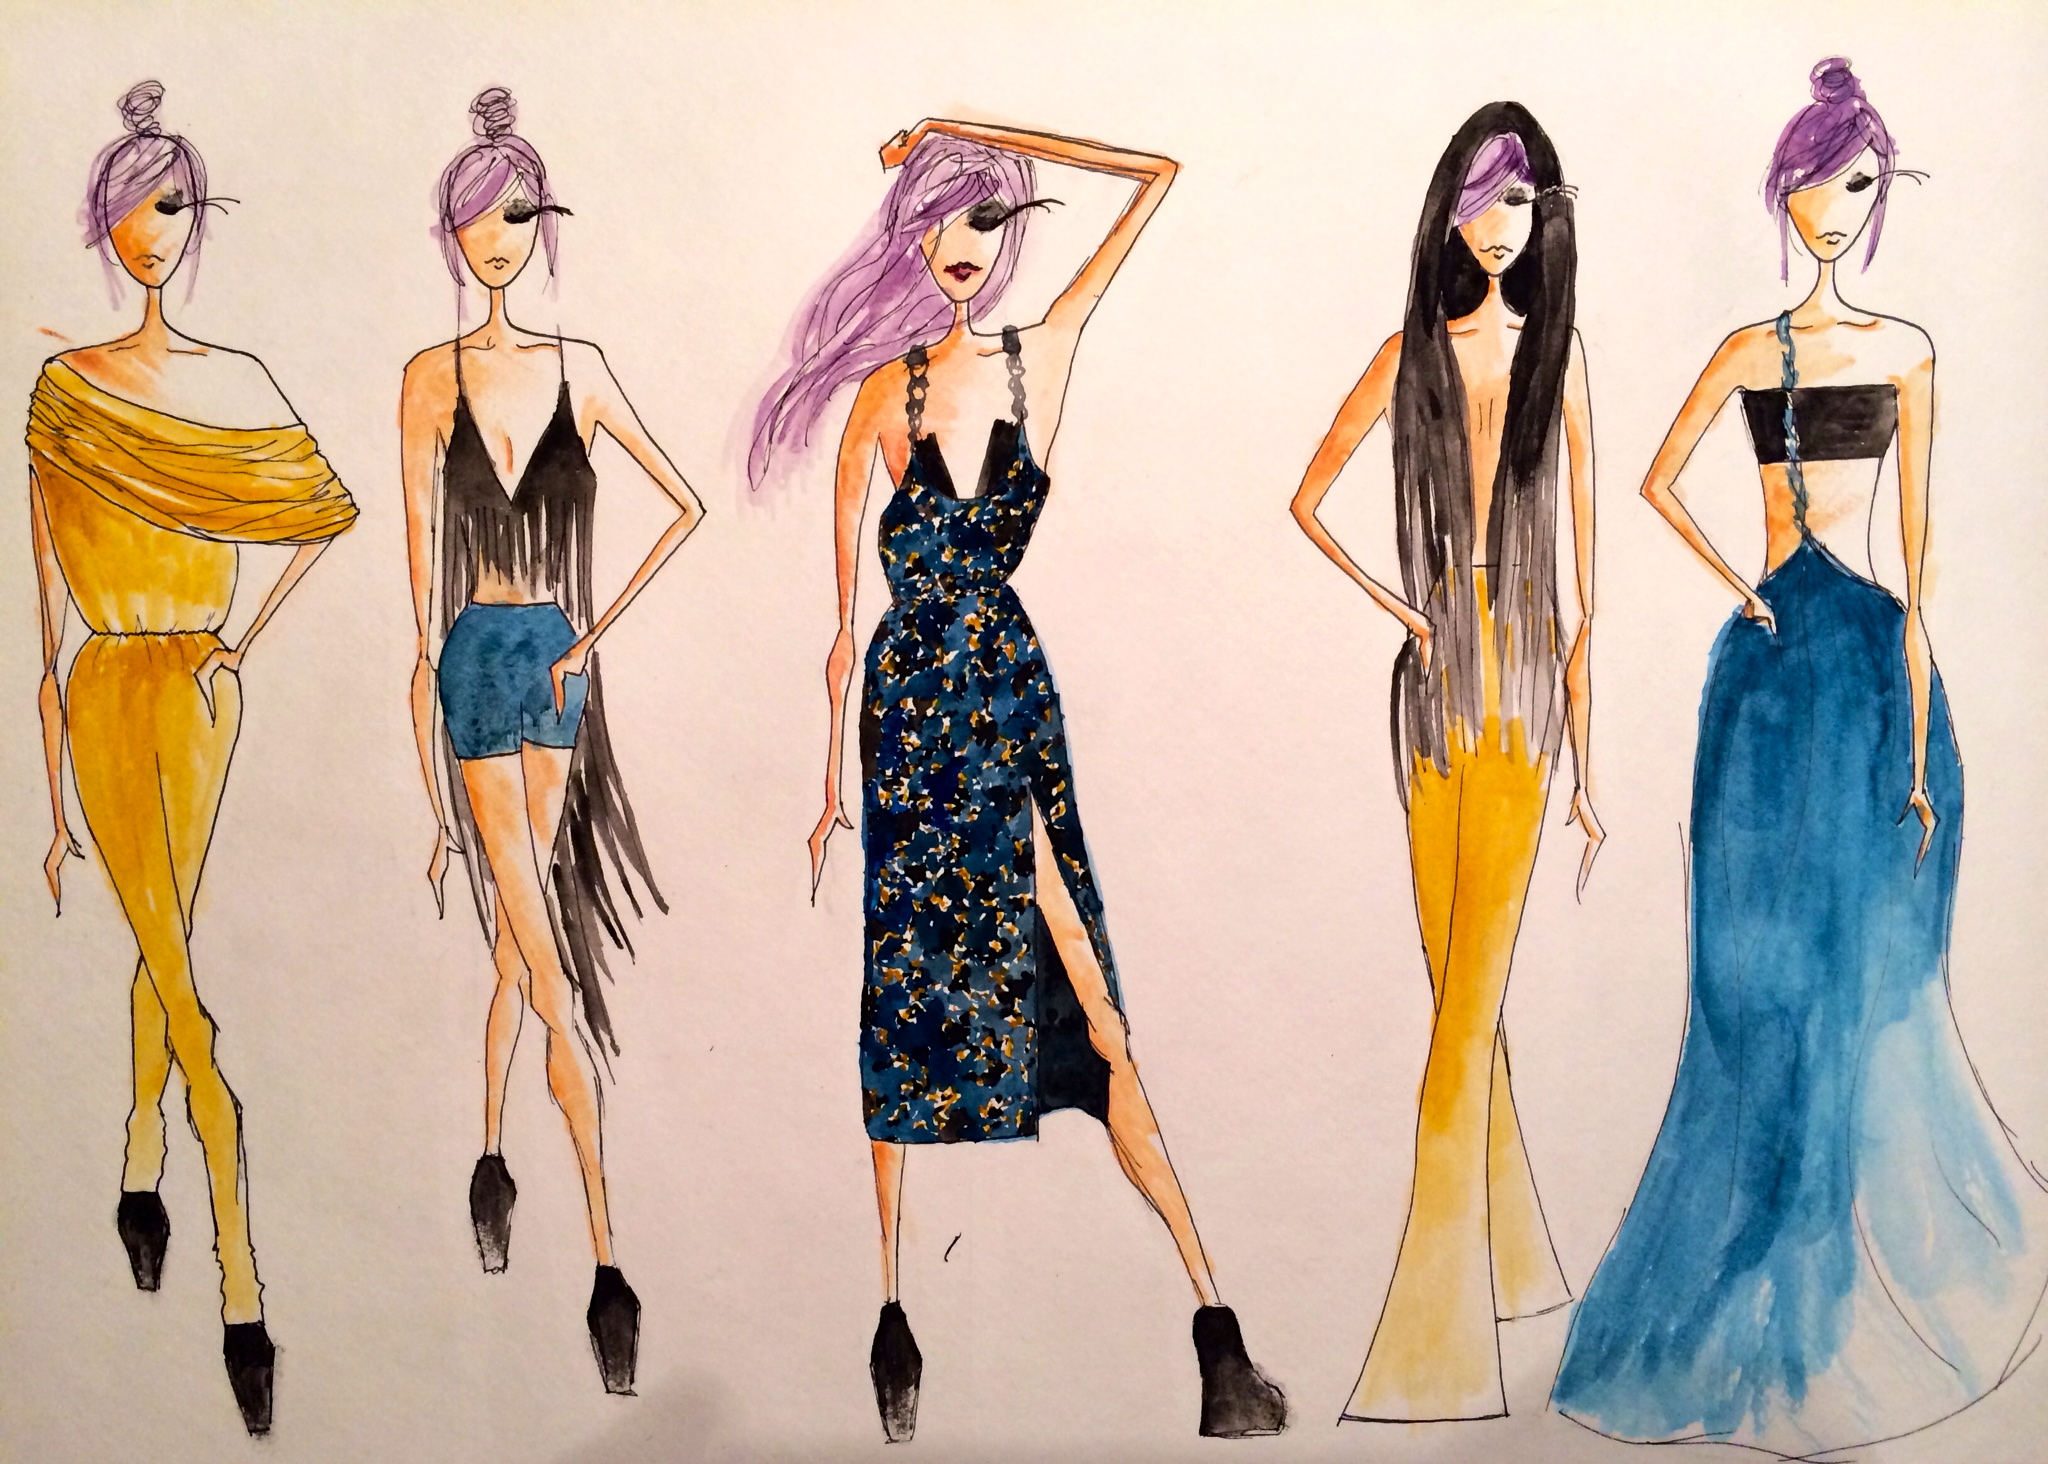 Clothing Design Sketches and clothing design